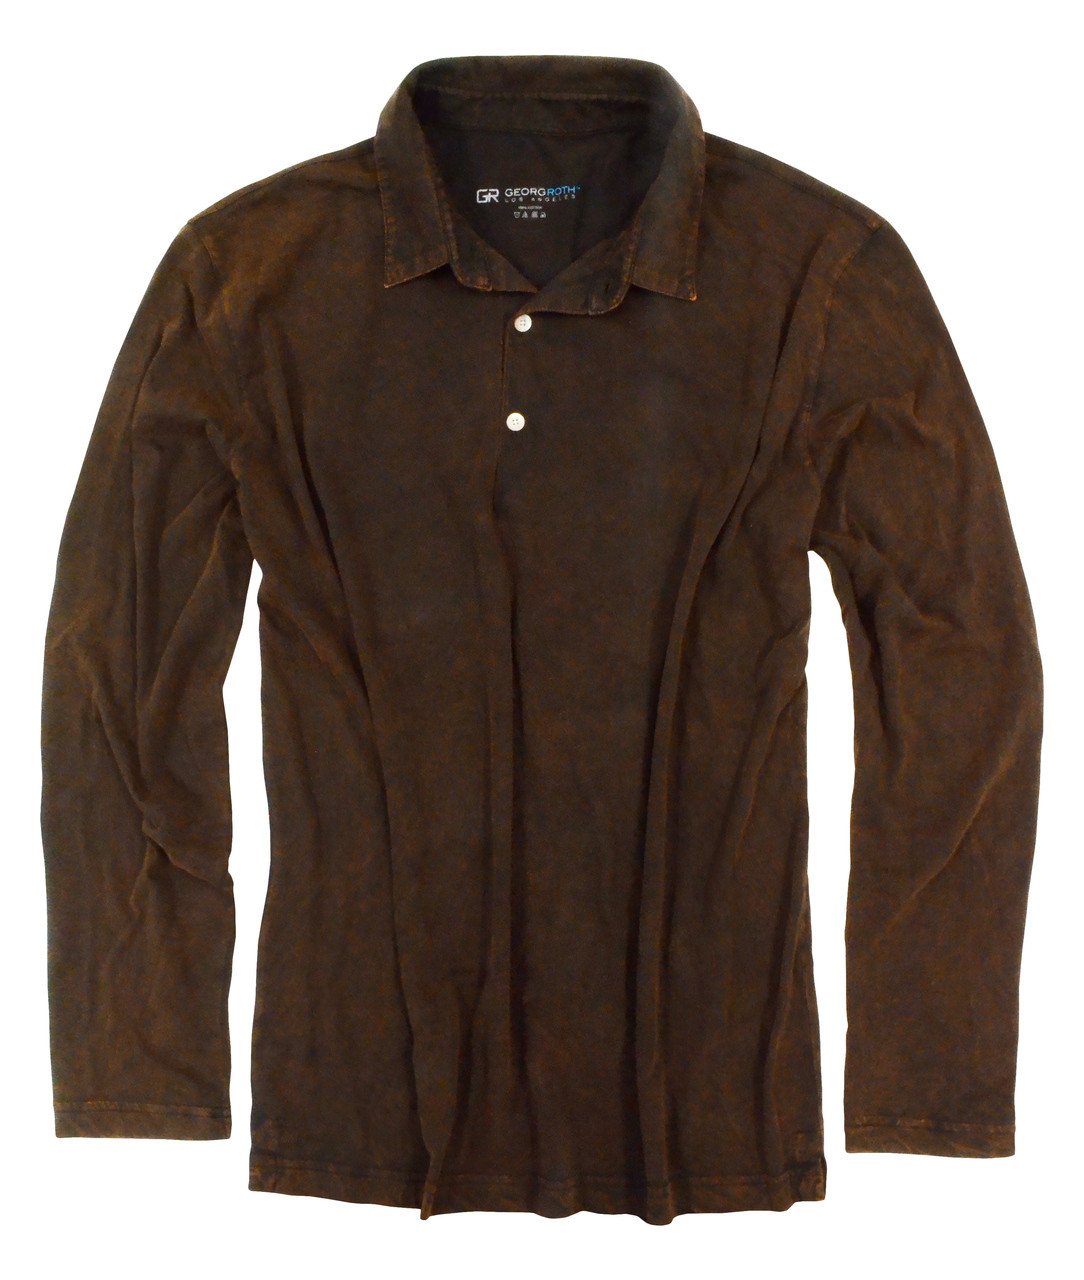 The World s Greatest Long Sleeve Chocolate washed Polo-Shirt Made of  natural materials Our guarantee 719a9579e